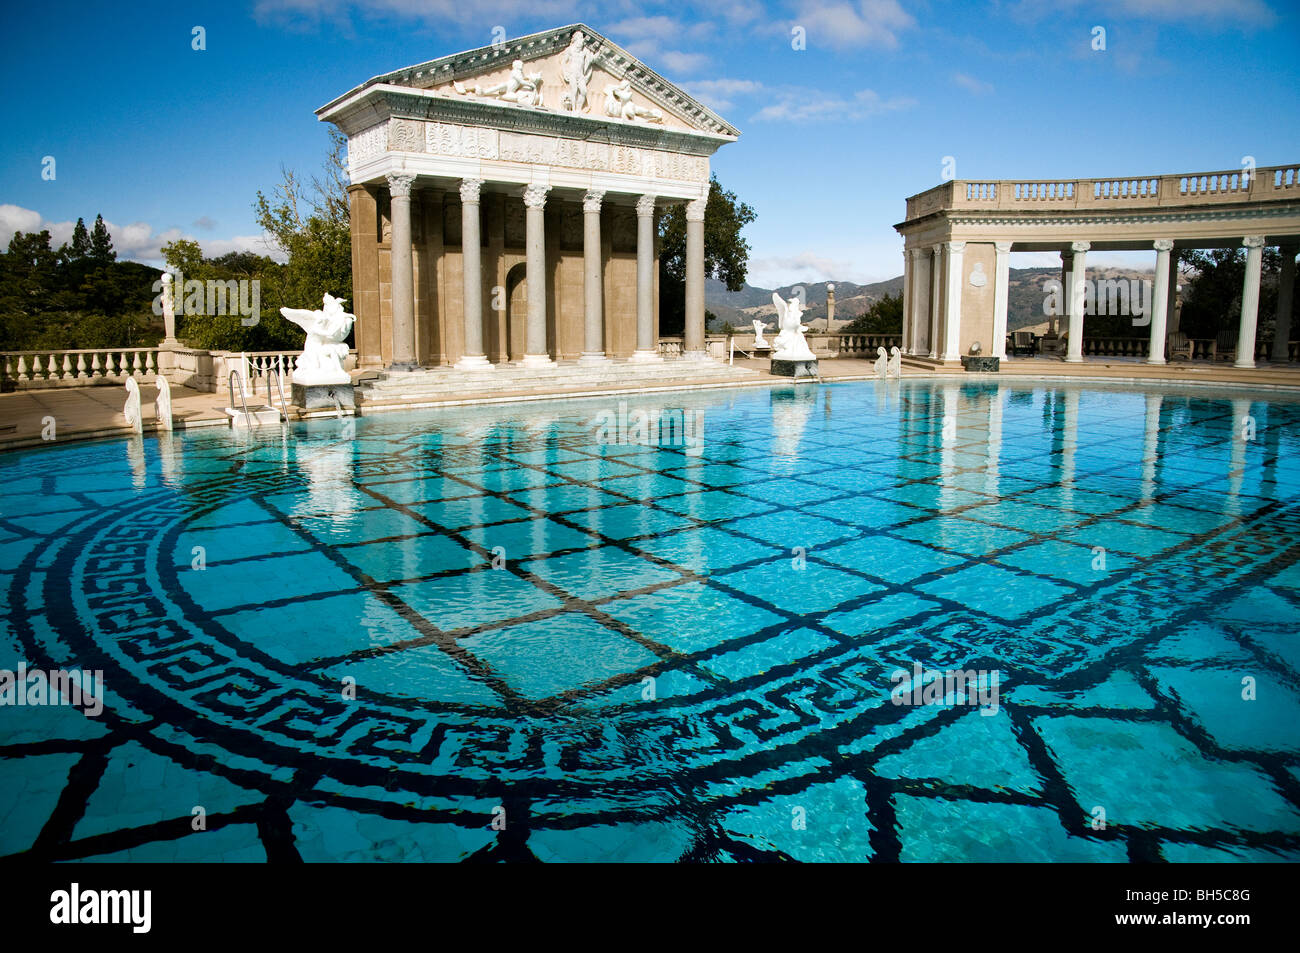 The neptune pool hearst castle san simeon california - Is there a swimming pool in buckingham palace ...